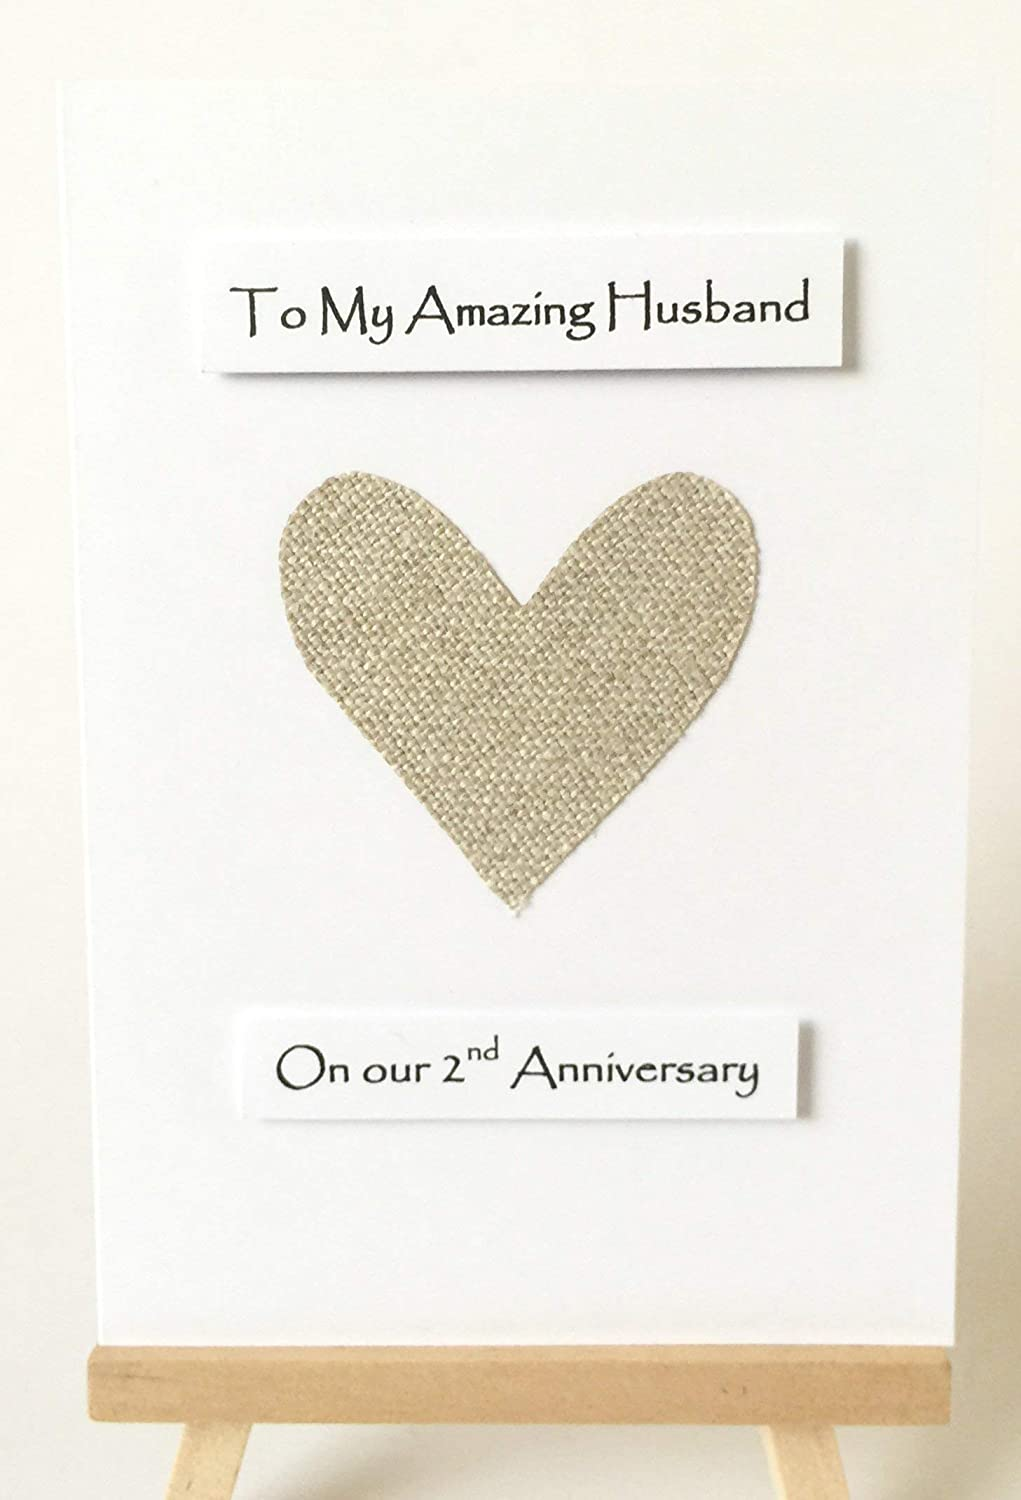 """4nd Wedding Anniversary Card Cotton Anniversary Wife Husband Her Him - Fawn  Cotton Heart - A4 size white card 4mm x 4mm 4.4"""" x 4.4"""""""